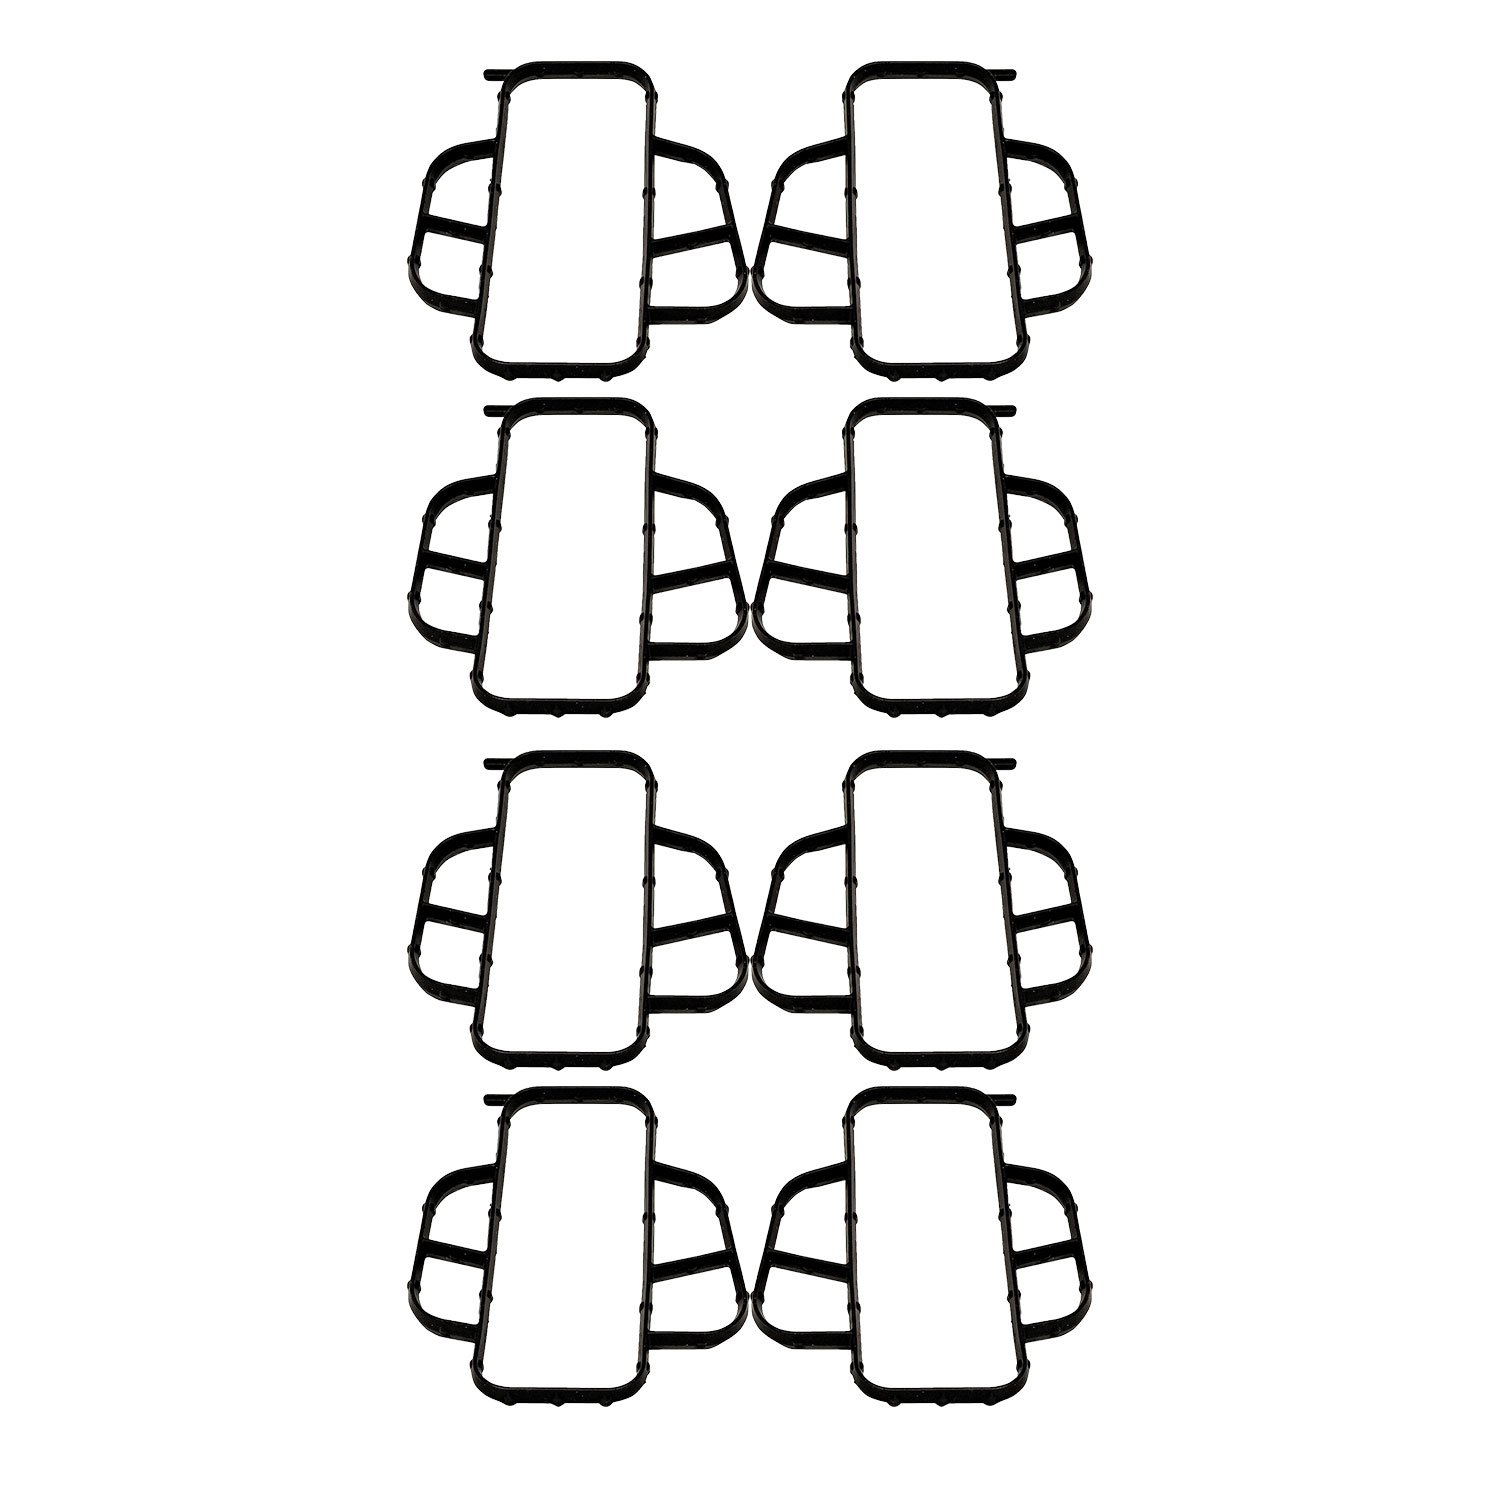 2710 - Seal Port LS Kit for AirForce Manifold PN 2701-2702 Image